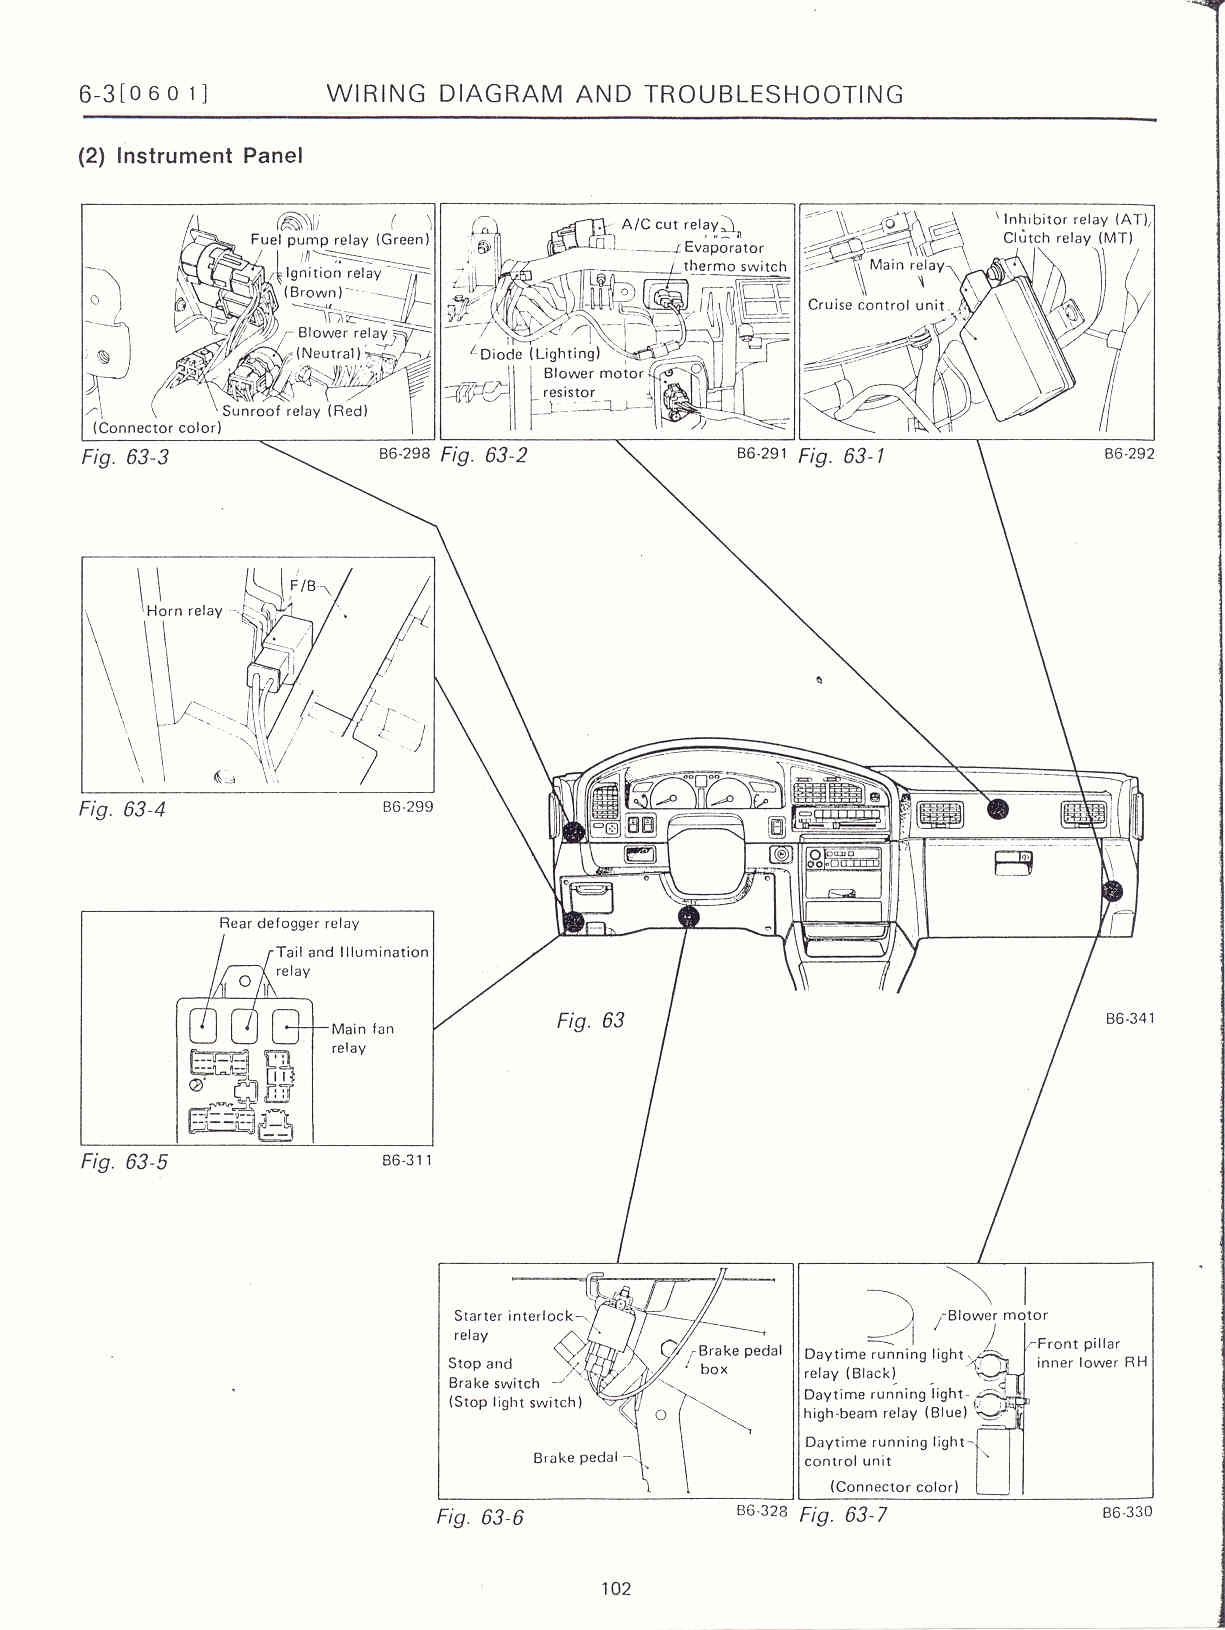 Famous Subaru Impreza Wiring Diagram Images - The Best Electrical ...